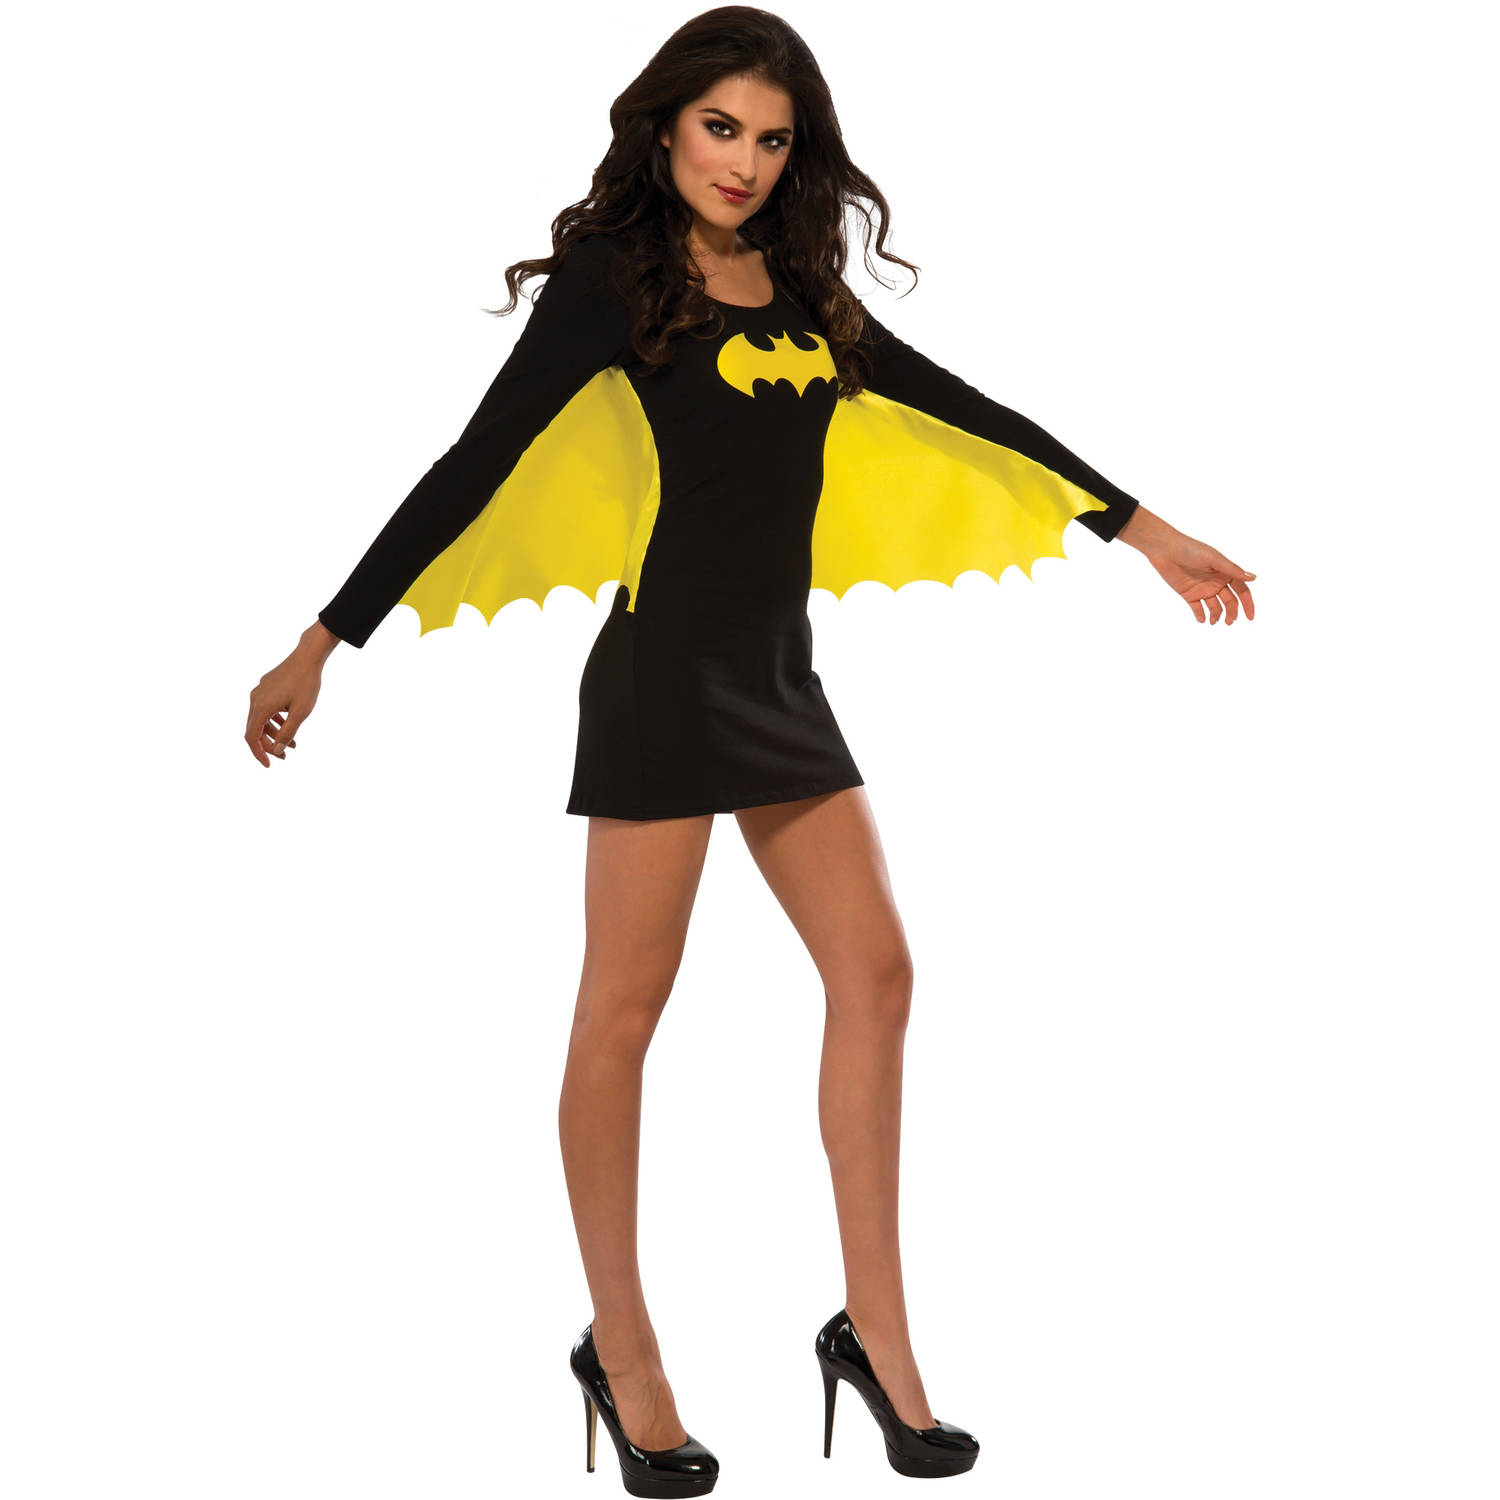 Batgirl Wing Dress Women's Adult Halloween Costume